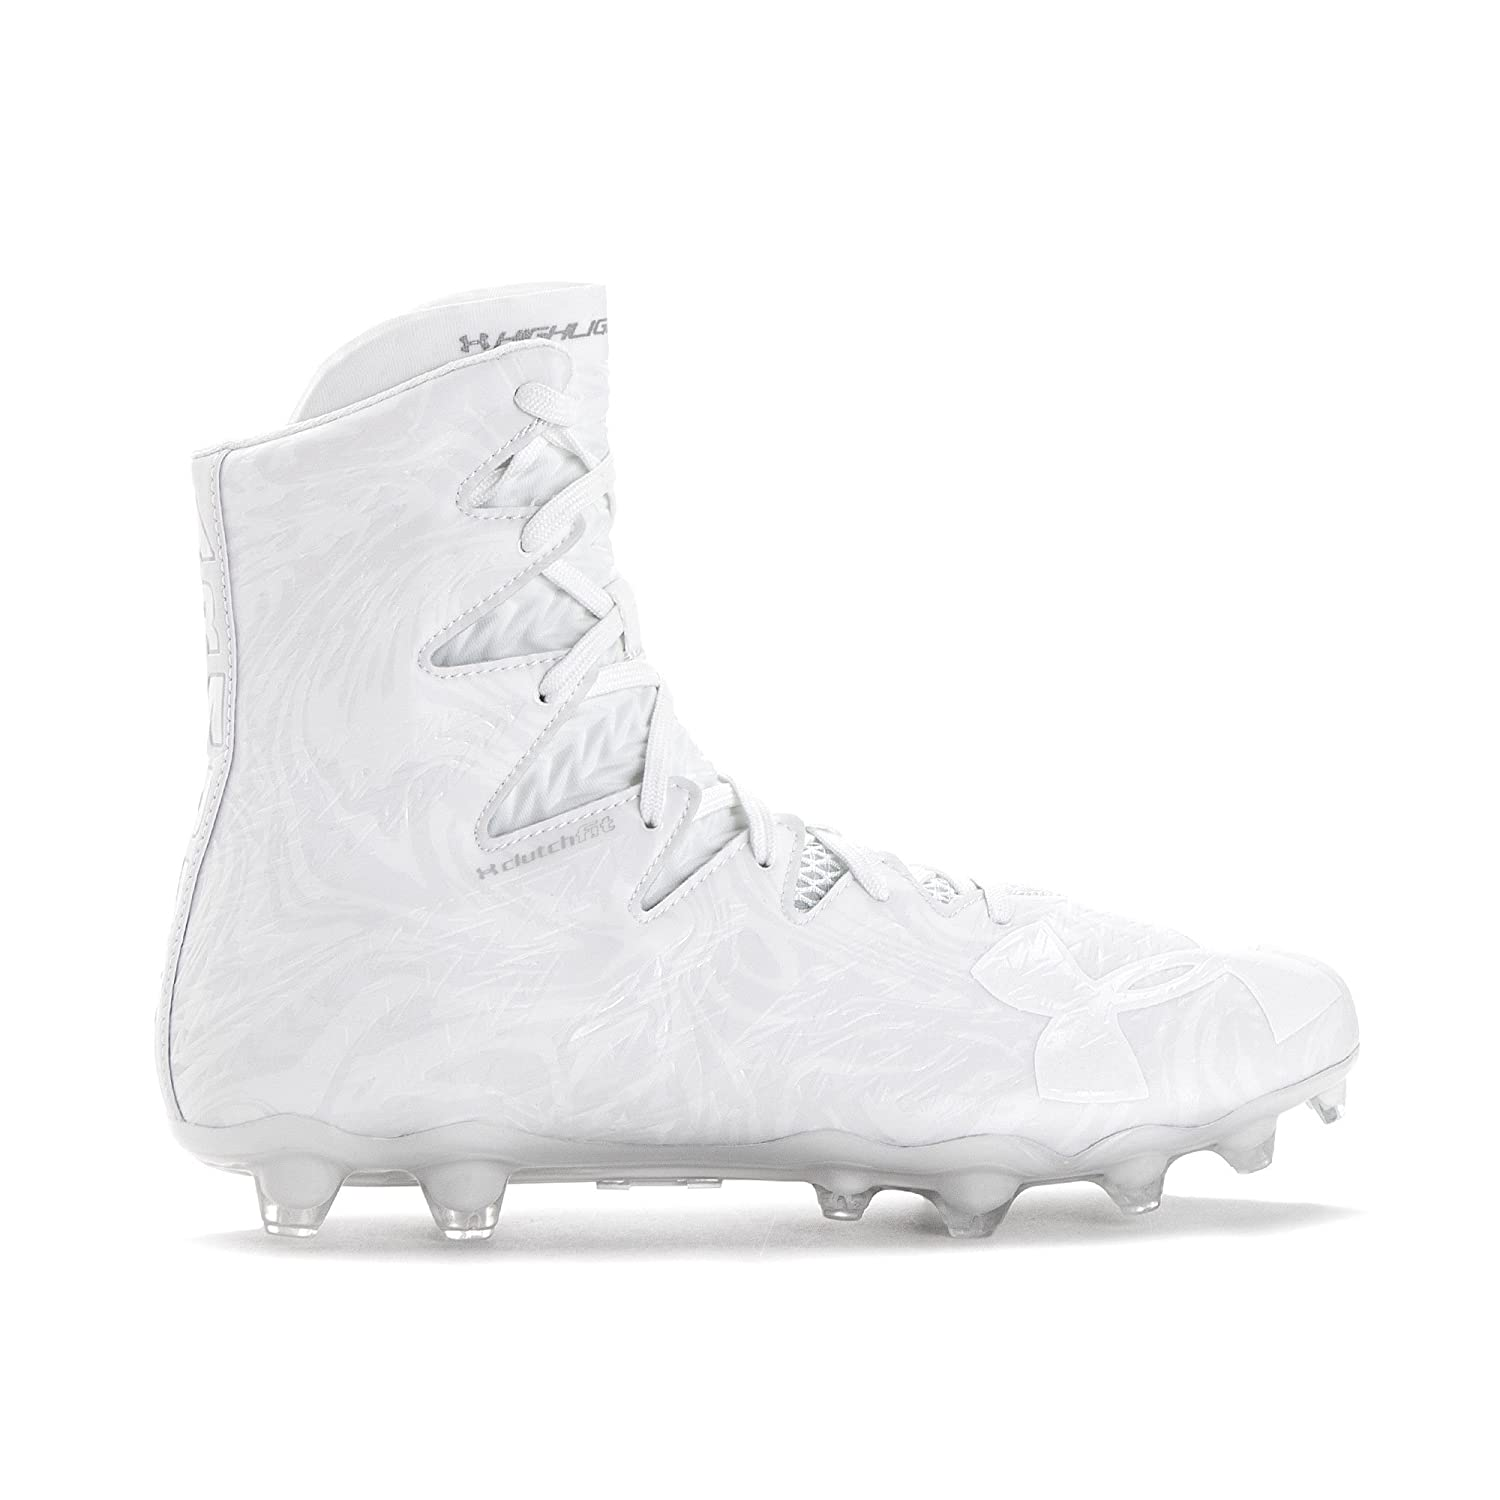 c5bc08b07 Amazon.com | Under Armour Men's Highlight MC Football Cleat, White/White,  10 M US | Football